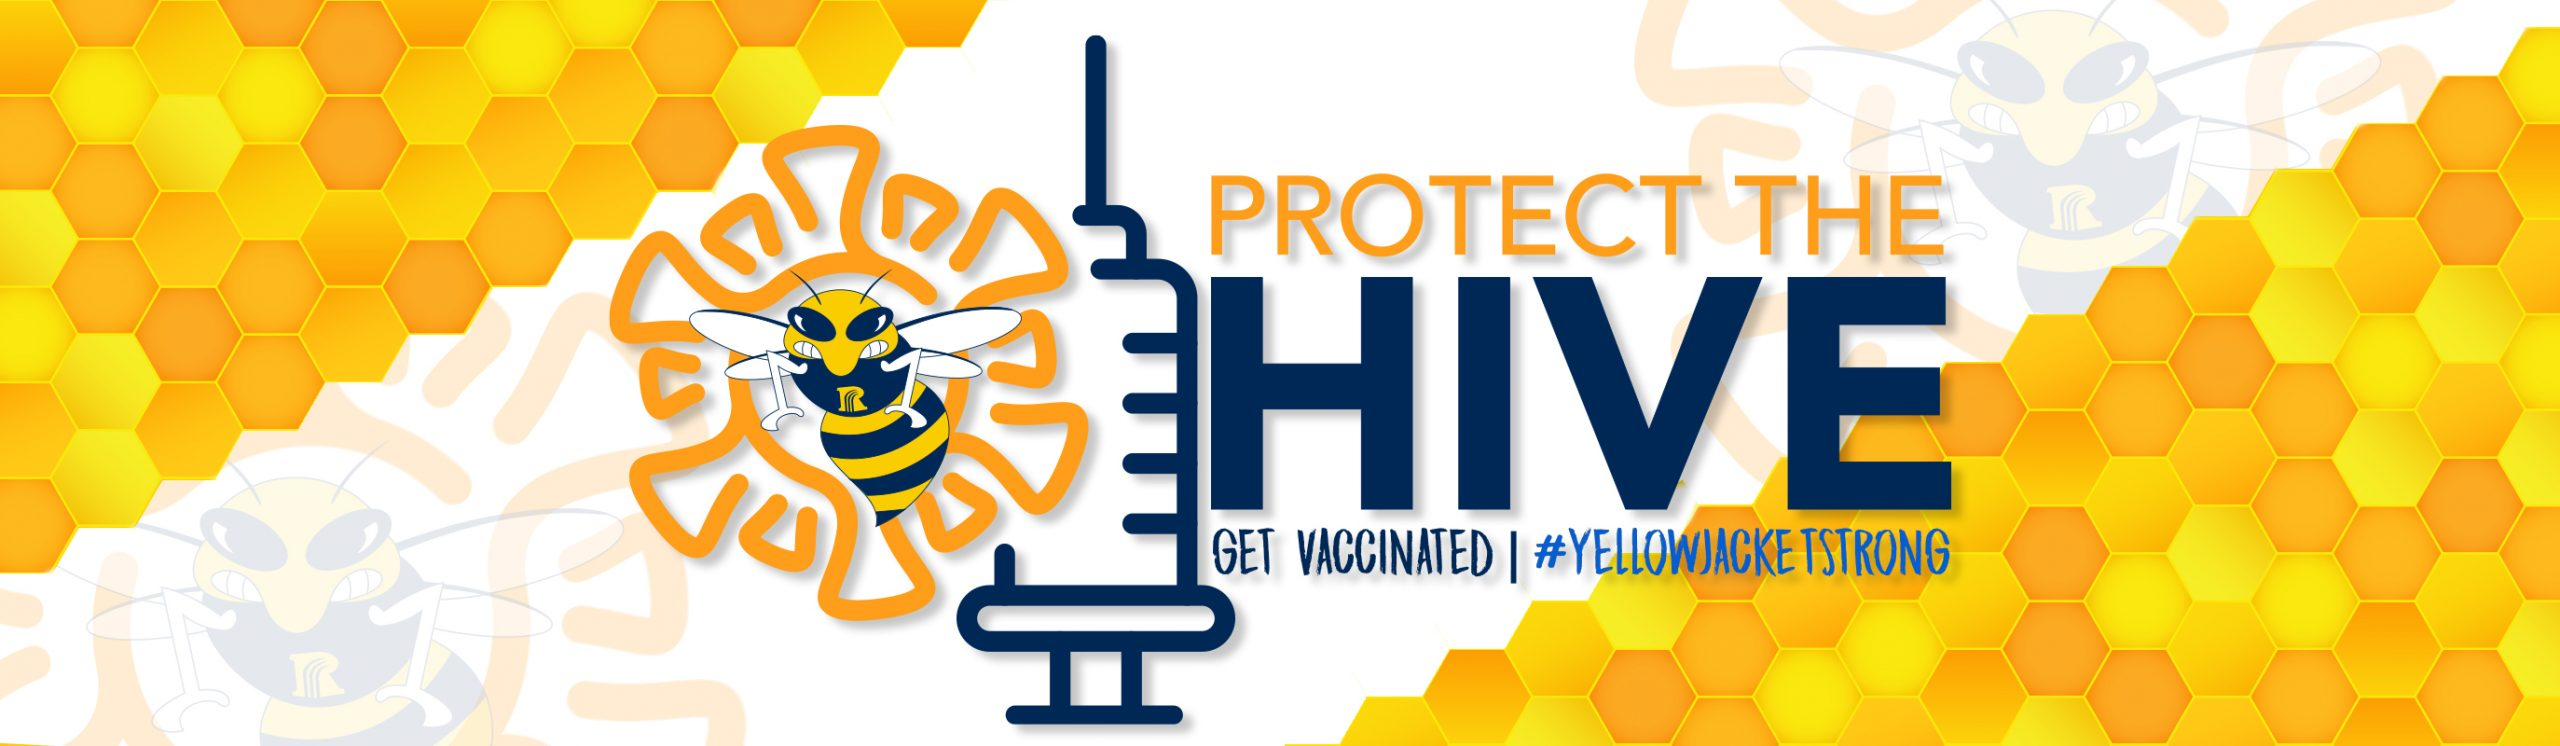 Protect the hive